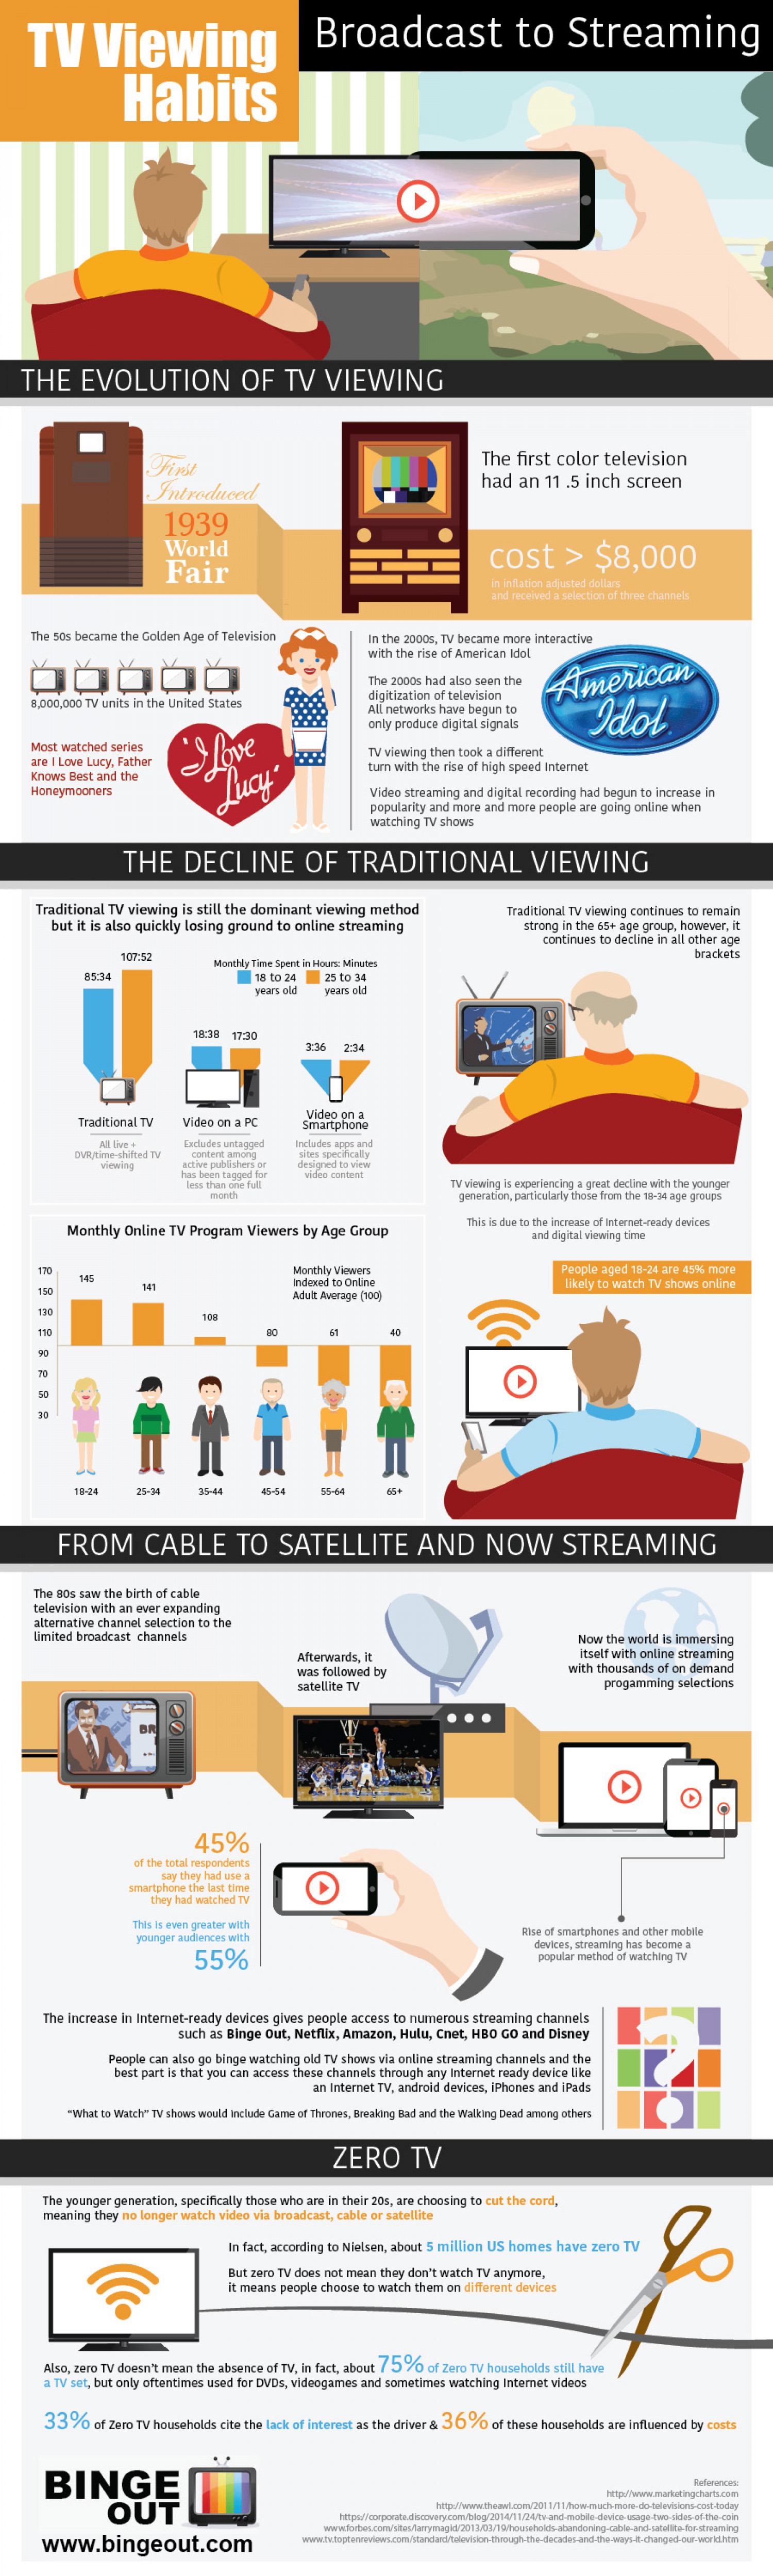 TV Viewing Habits, Broadcast to Streaming Infographic